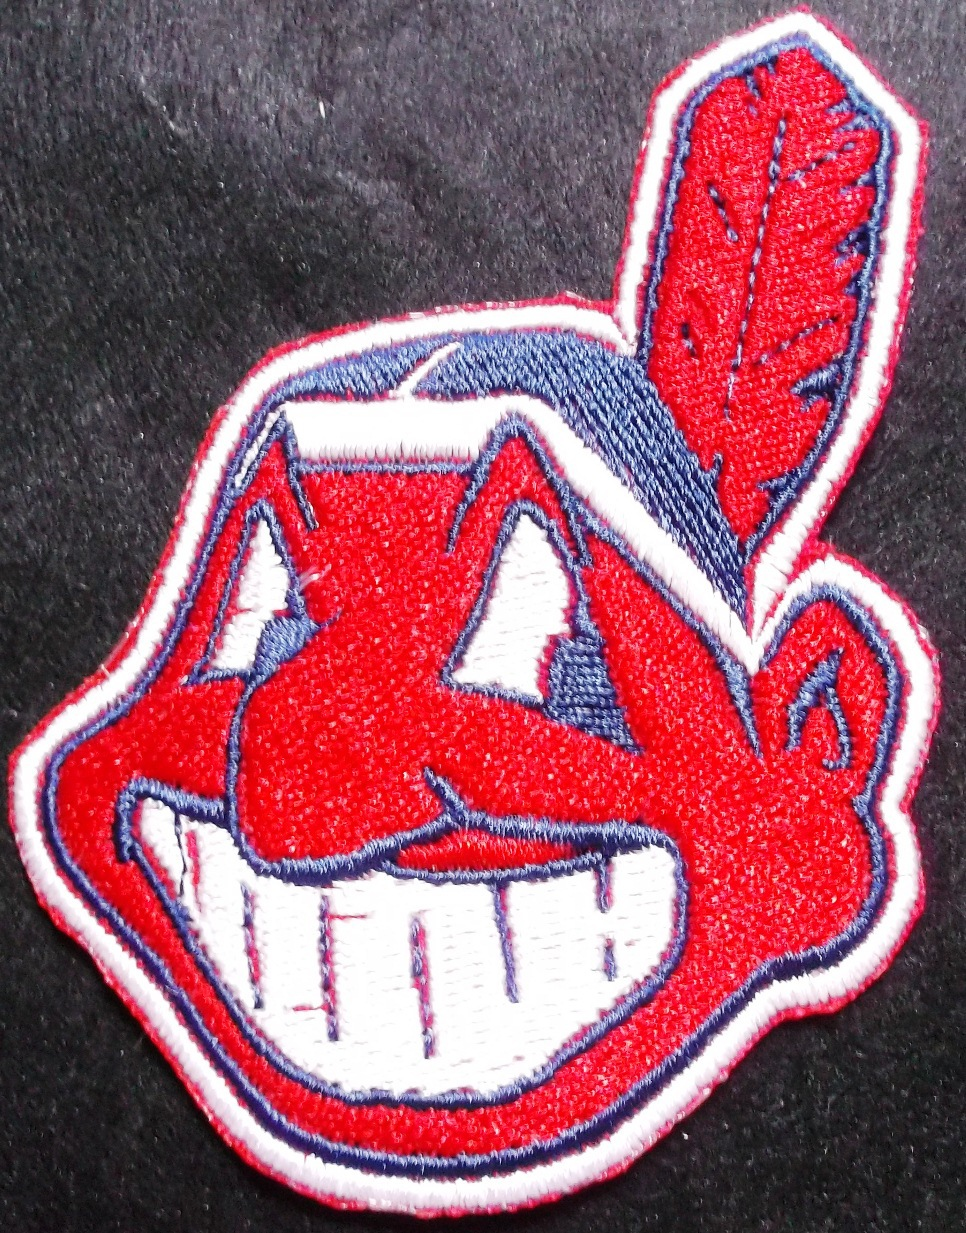 Cleveland indians logo iron on patch and 24 similar items biocorpaavc Choice Image